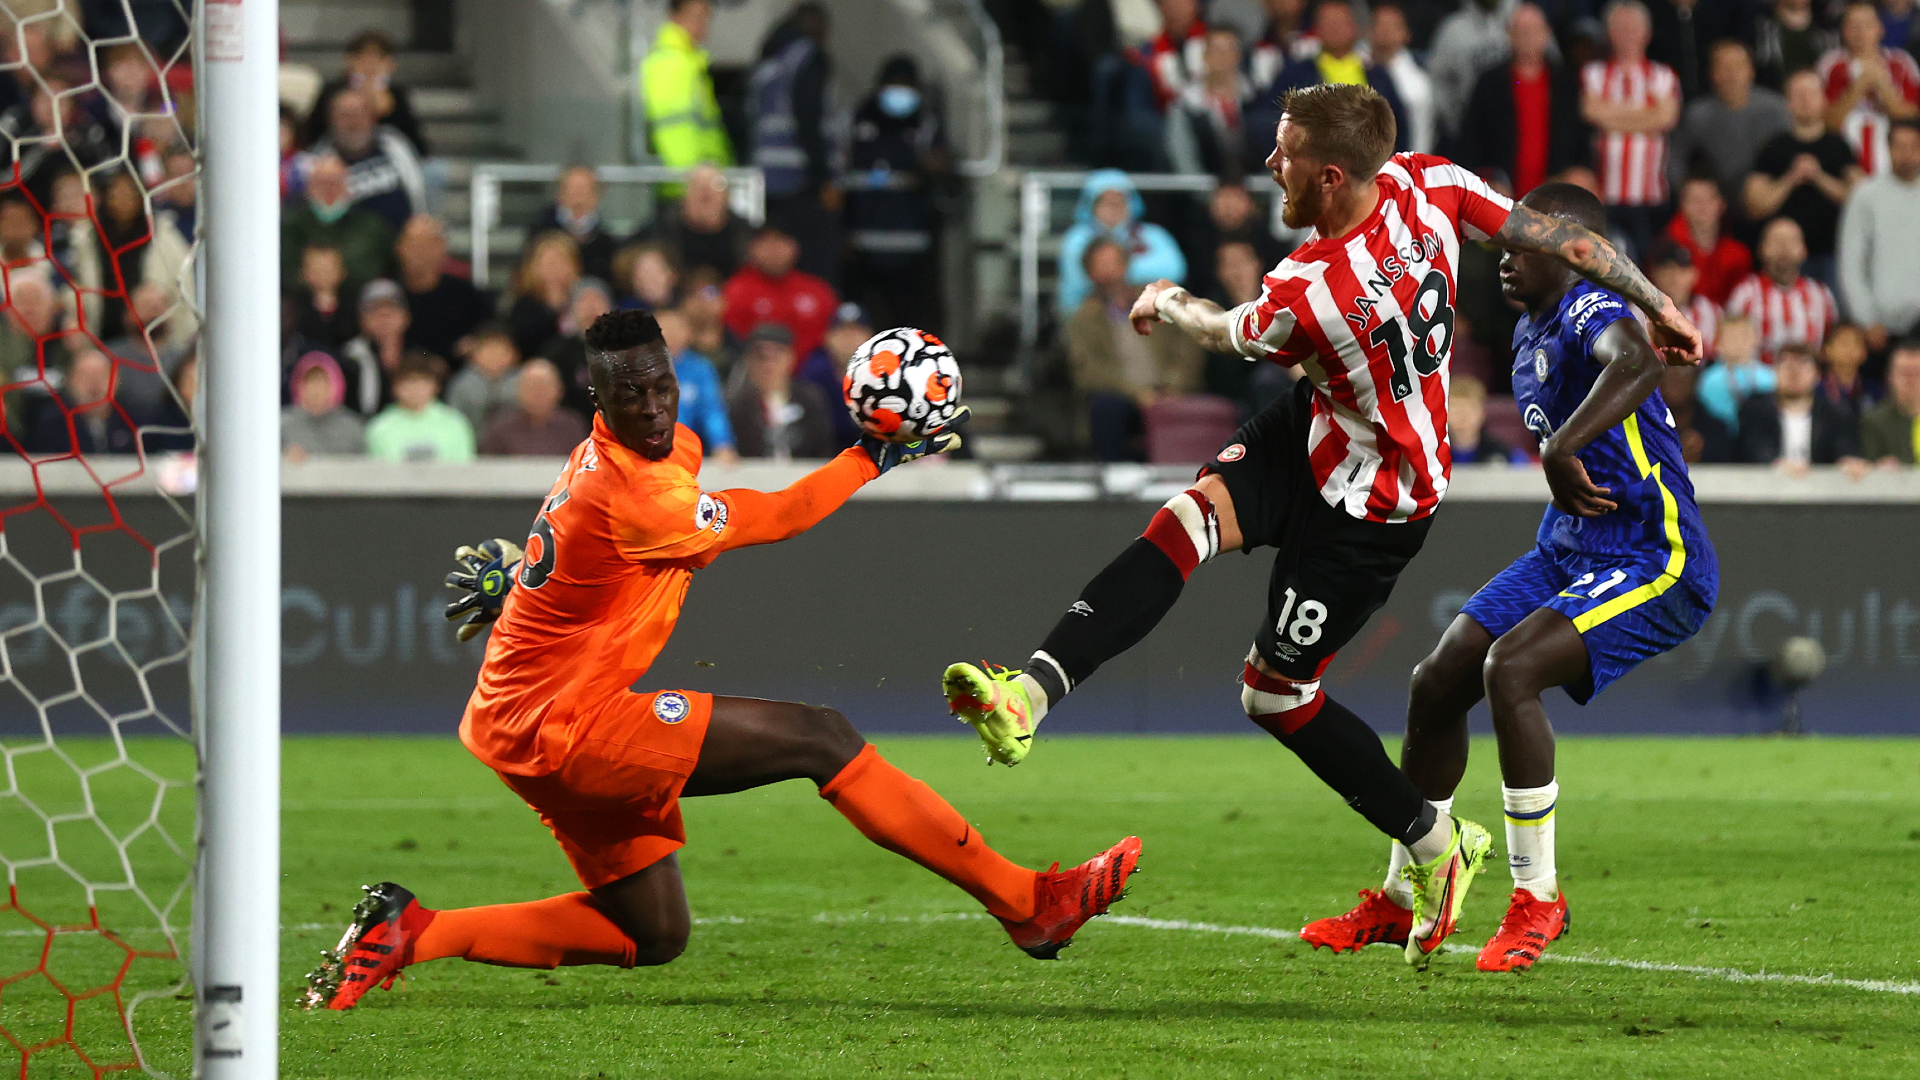 'Chelsea were not lucky vs Brentford, Mendy was outstanding' - Crooks